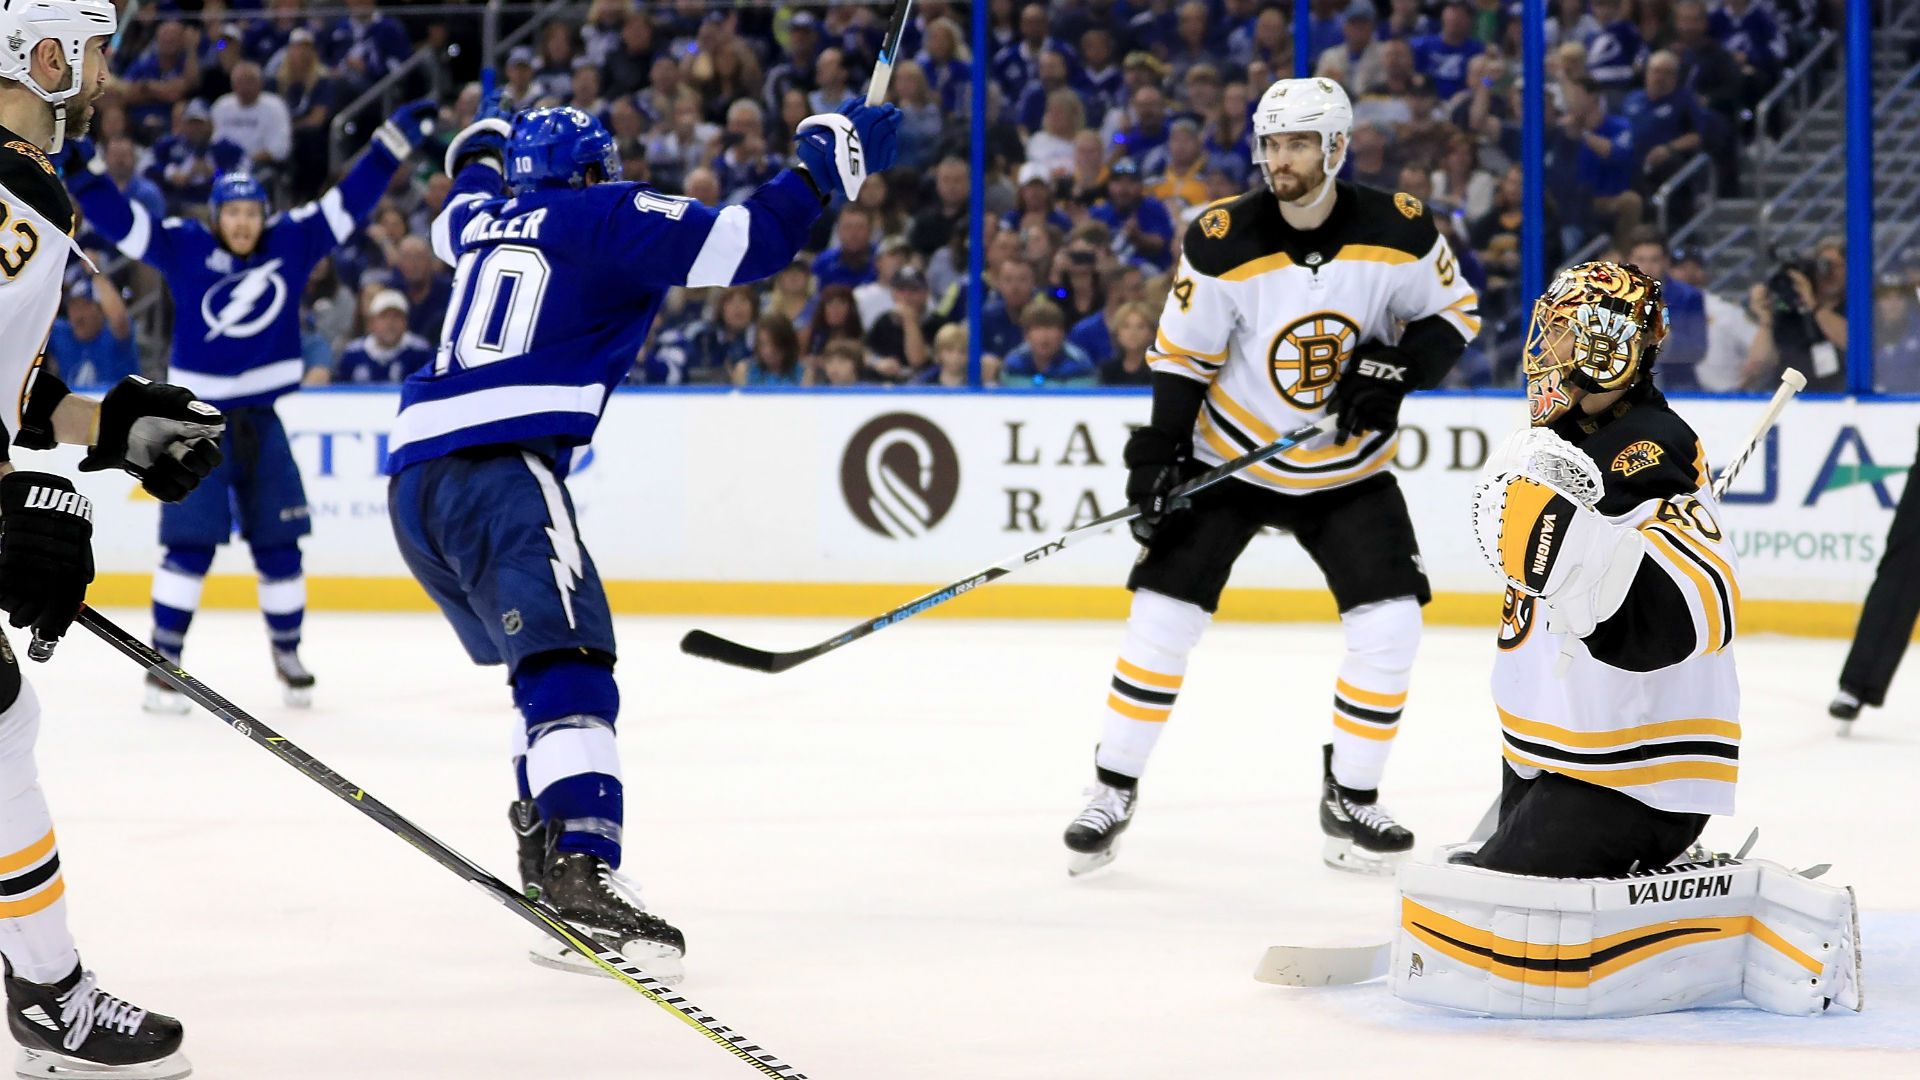 NHL Tells Brad Marchand To Stop Licking Opponents (For Real This Time)